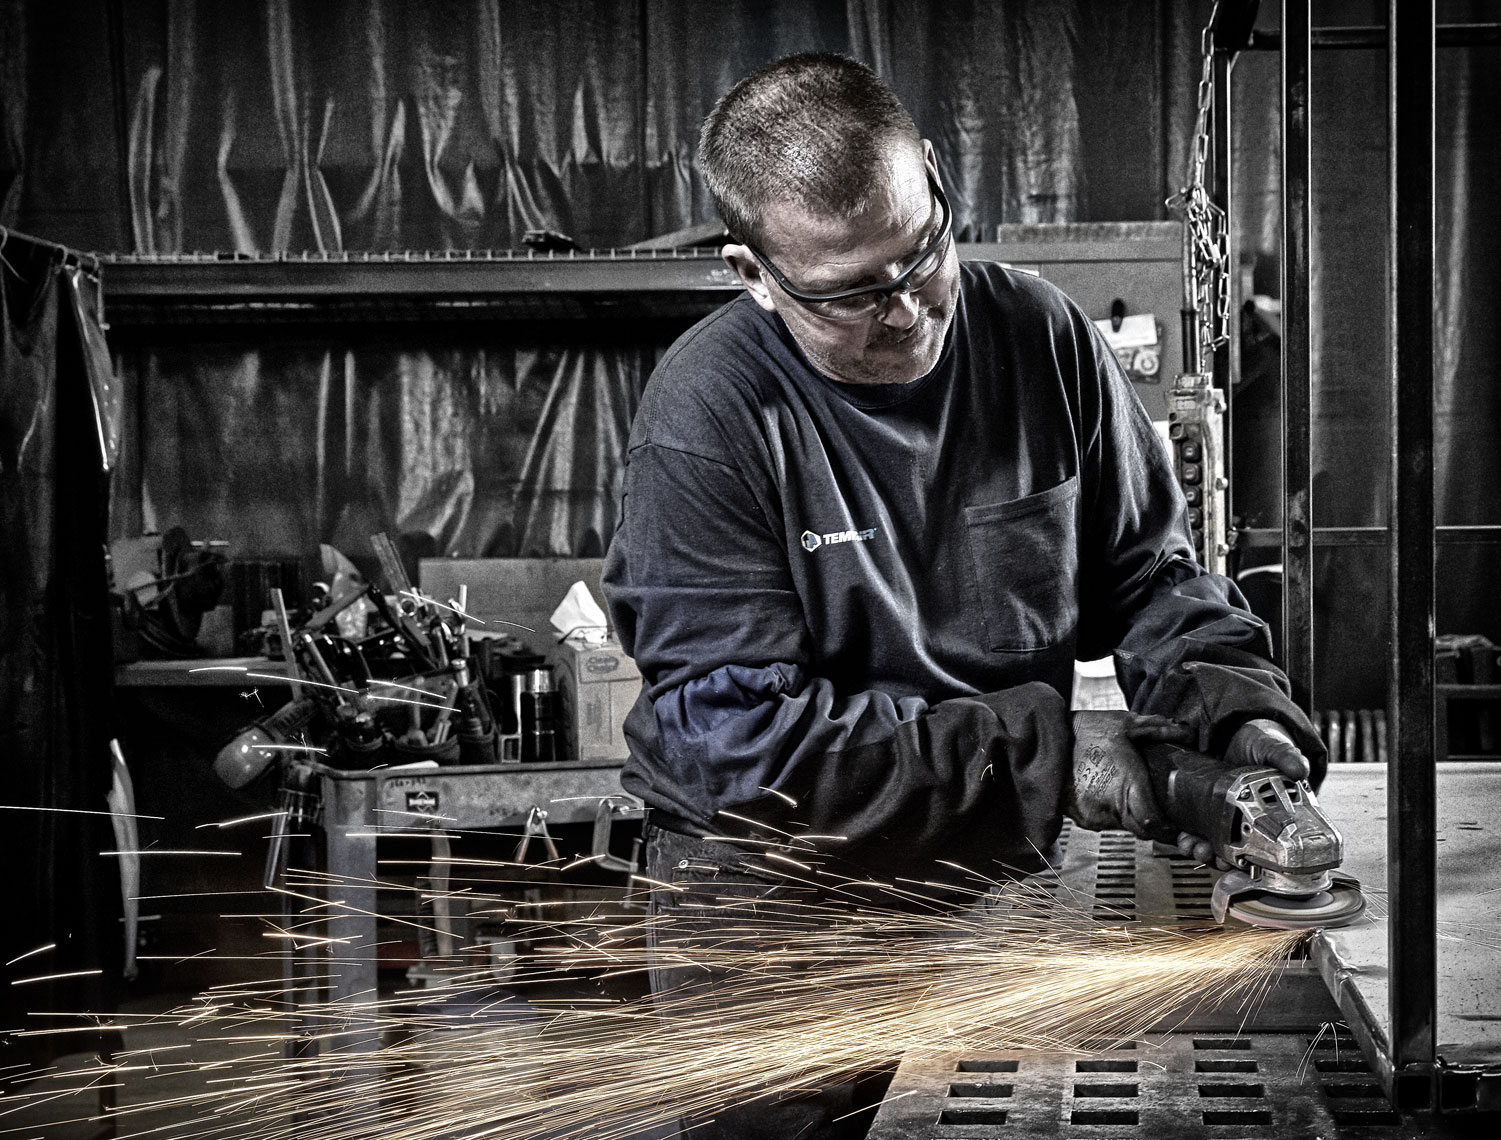 Tempair/worker grinding/sparks/b&w/lifestyle photo/InsideOut Studios